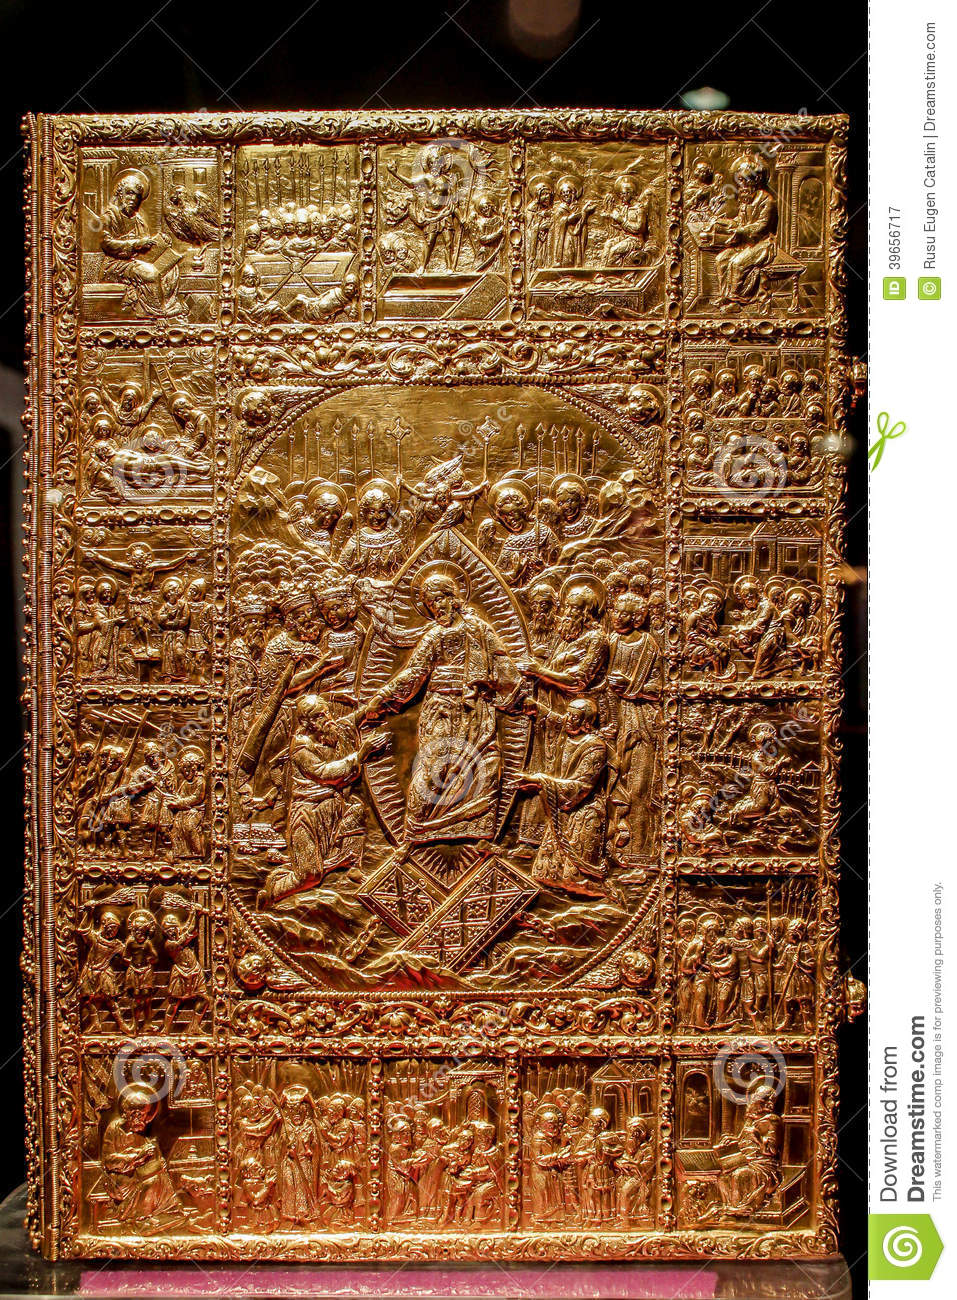 5 the book of kells